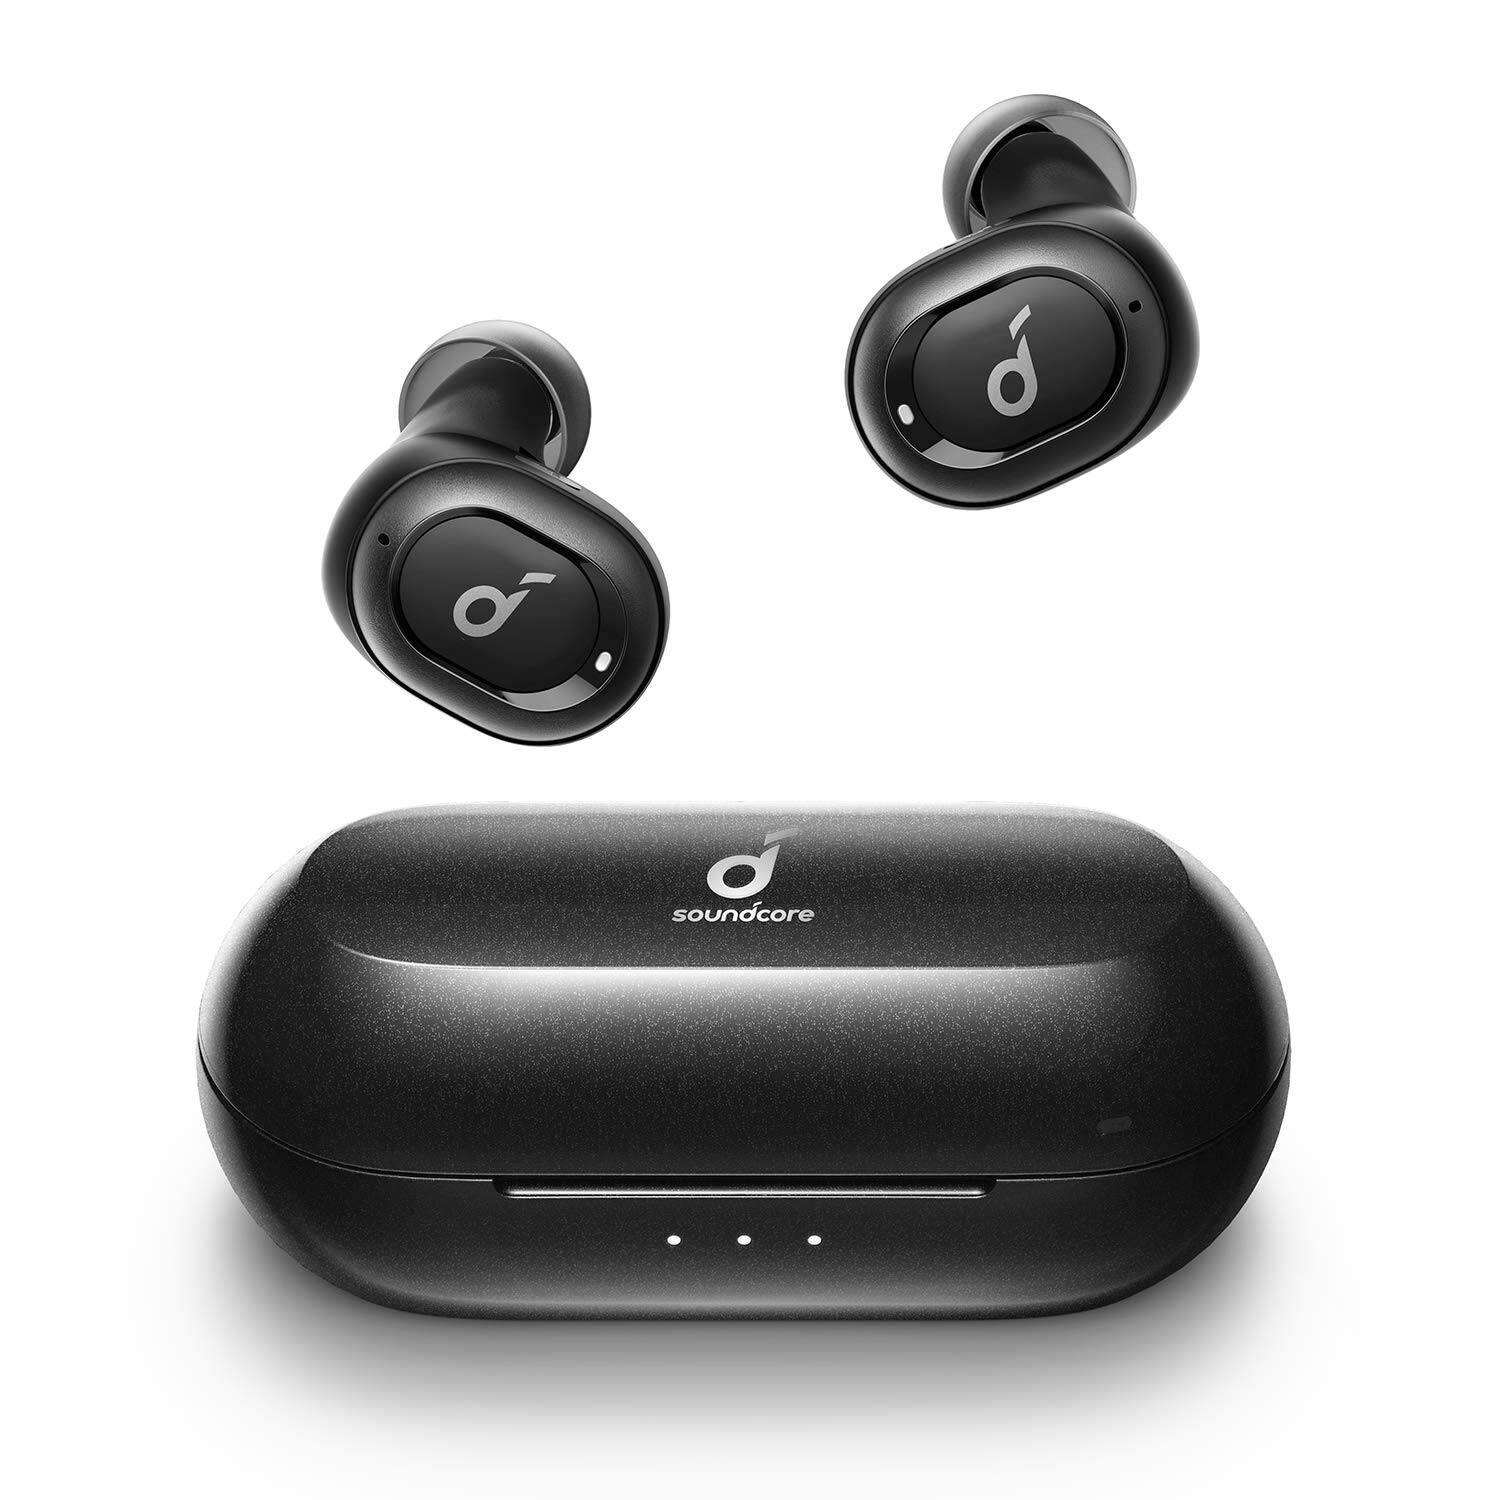 Anker Soundcore Liberty Neo Bluetooth 5.0 Truly Wireless Earbuds for $39.99 with coupon